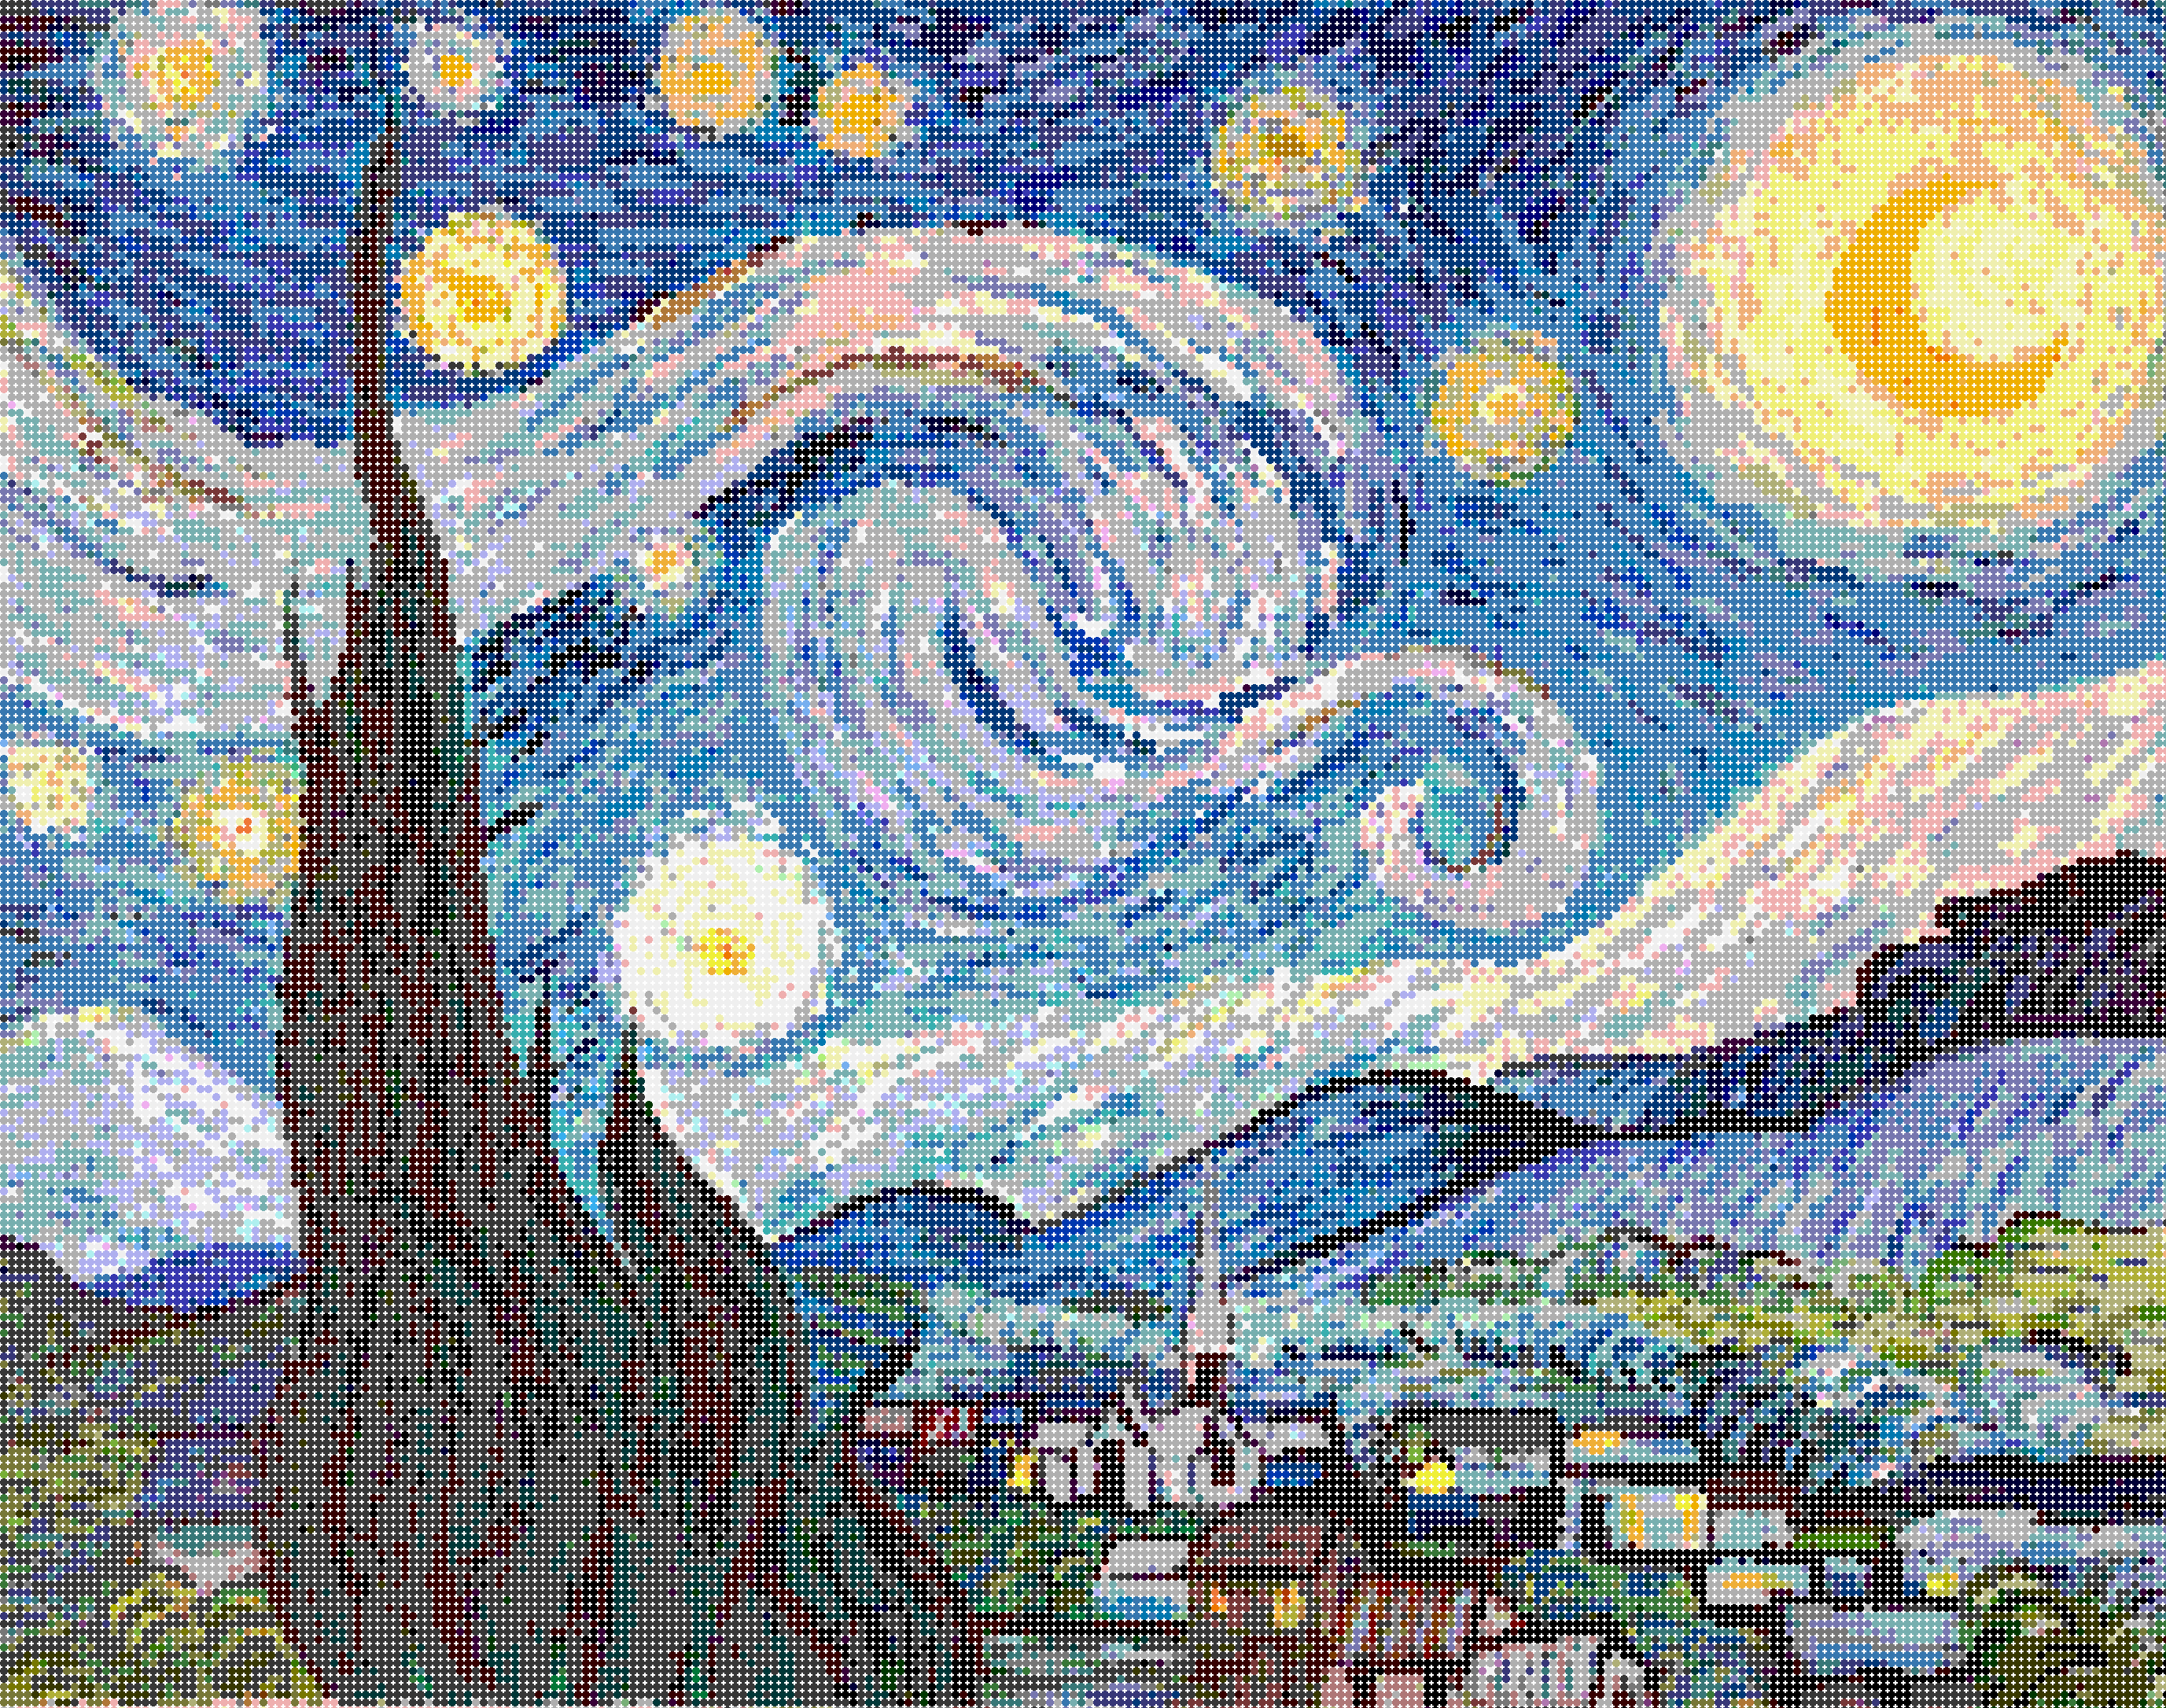 starry_night_circles_10x10